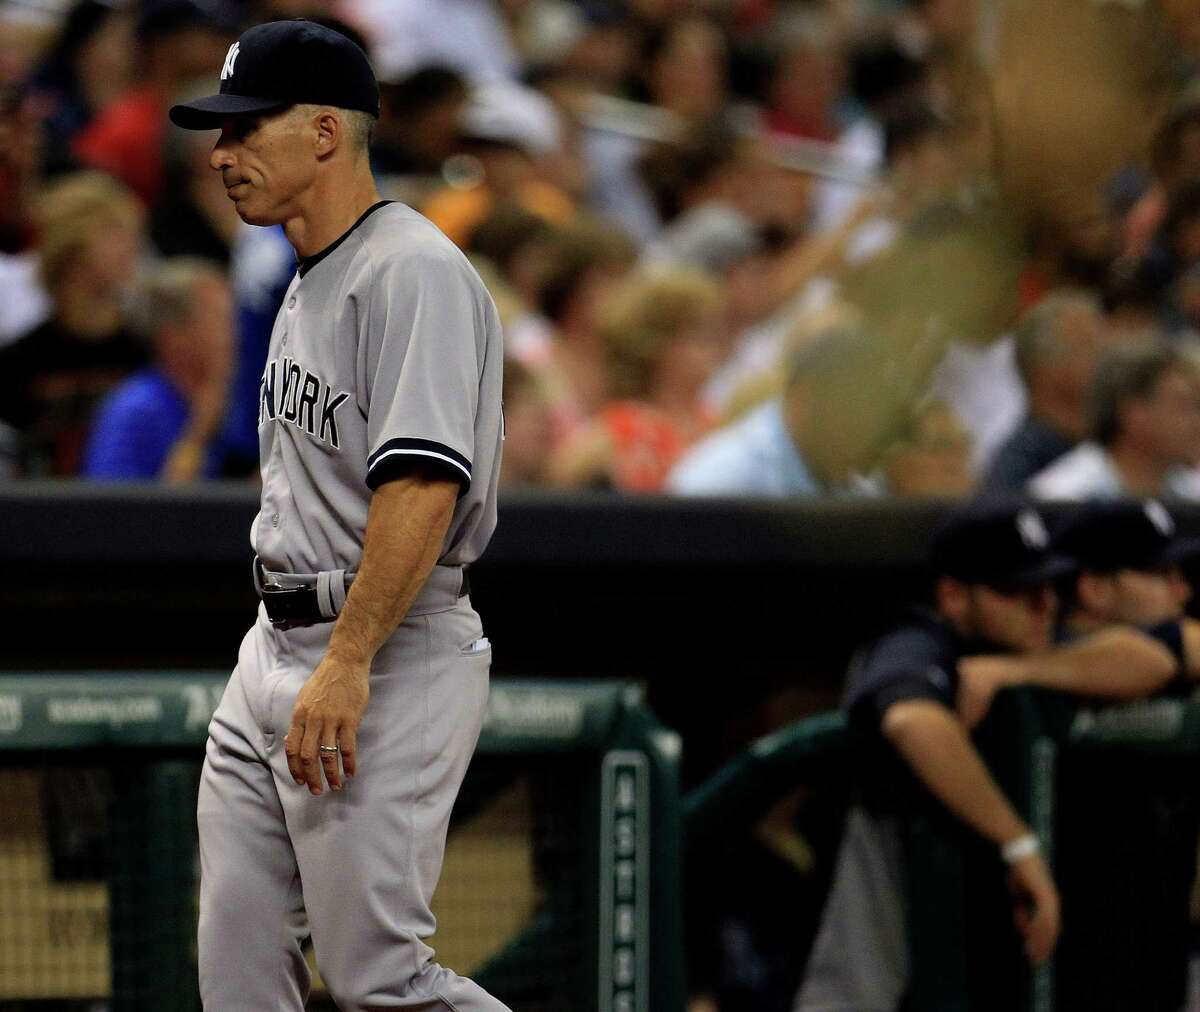 New York Yankees manager Joe Girardi (28) walks back to the dugout during the sixth inning of a MLB game at Minute Maid Park, Friday, Sept. 27, 2013, in Houston.